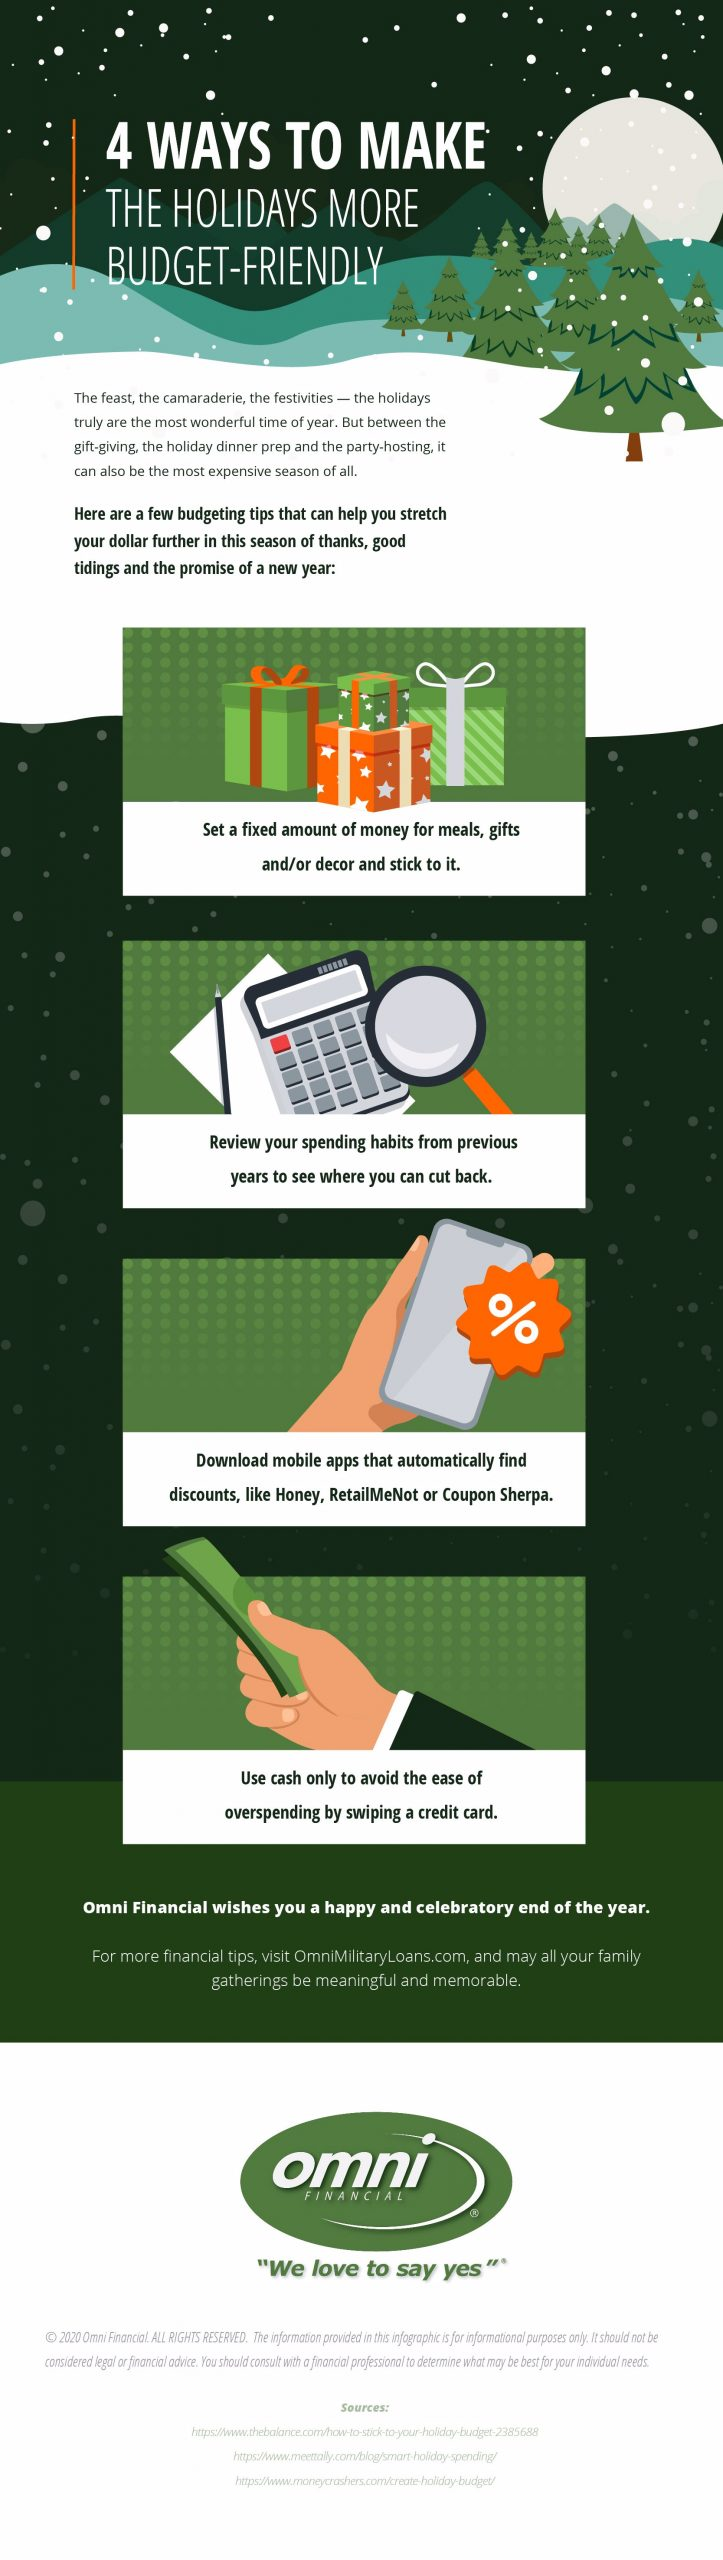 Four tips for making the holiday season more budget-friendly.